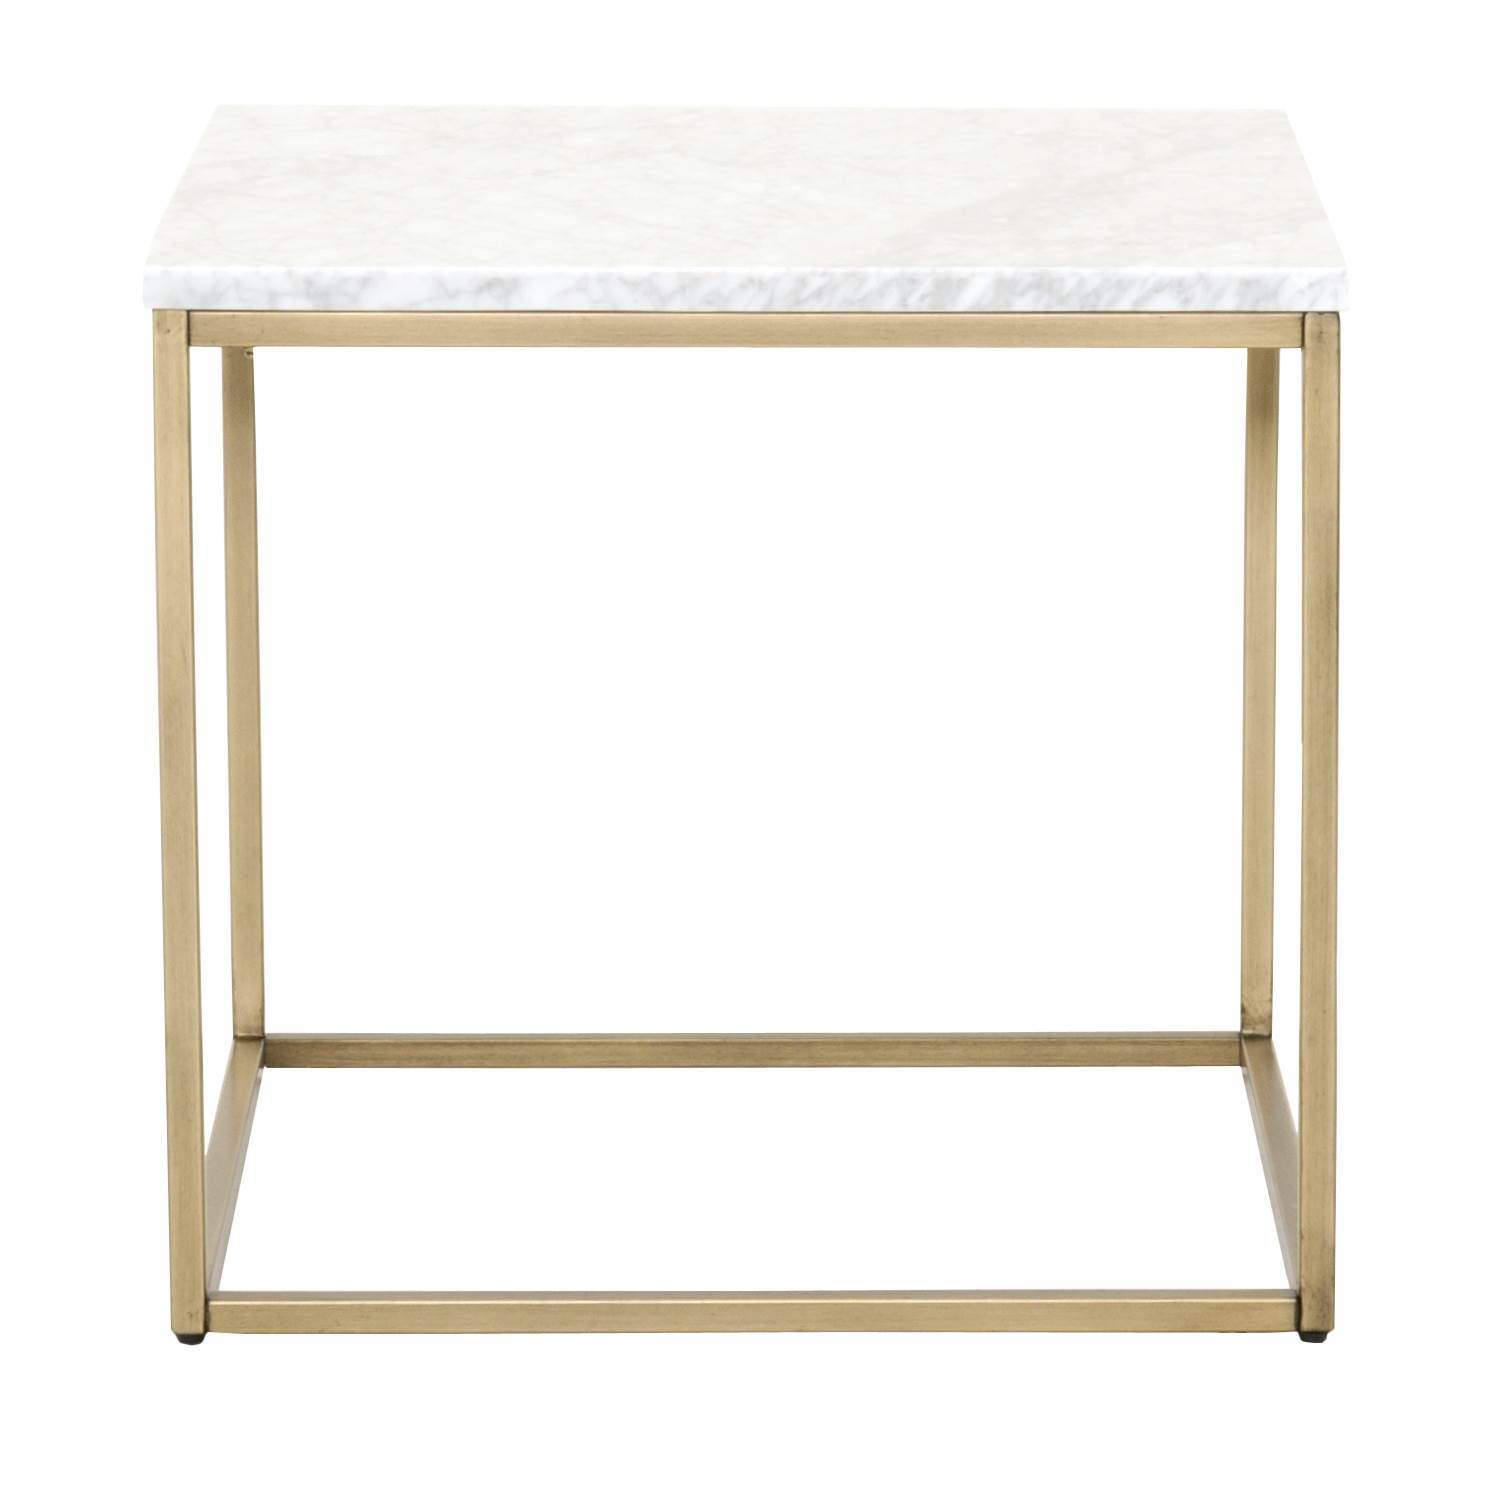 Carrera End Table in White Carrera Marble